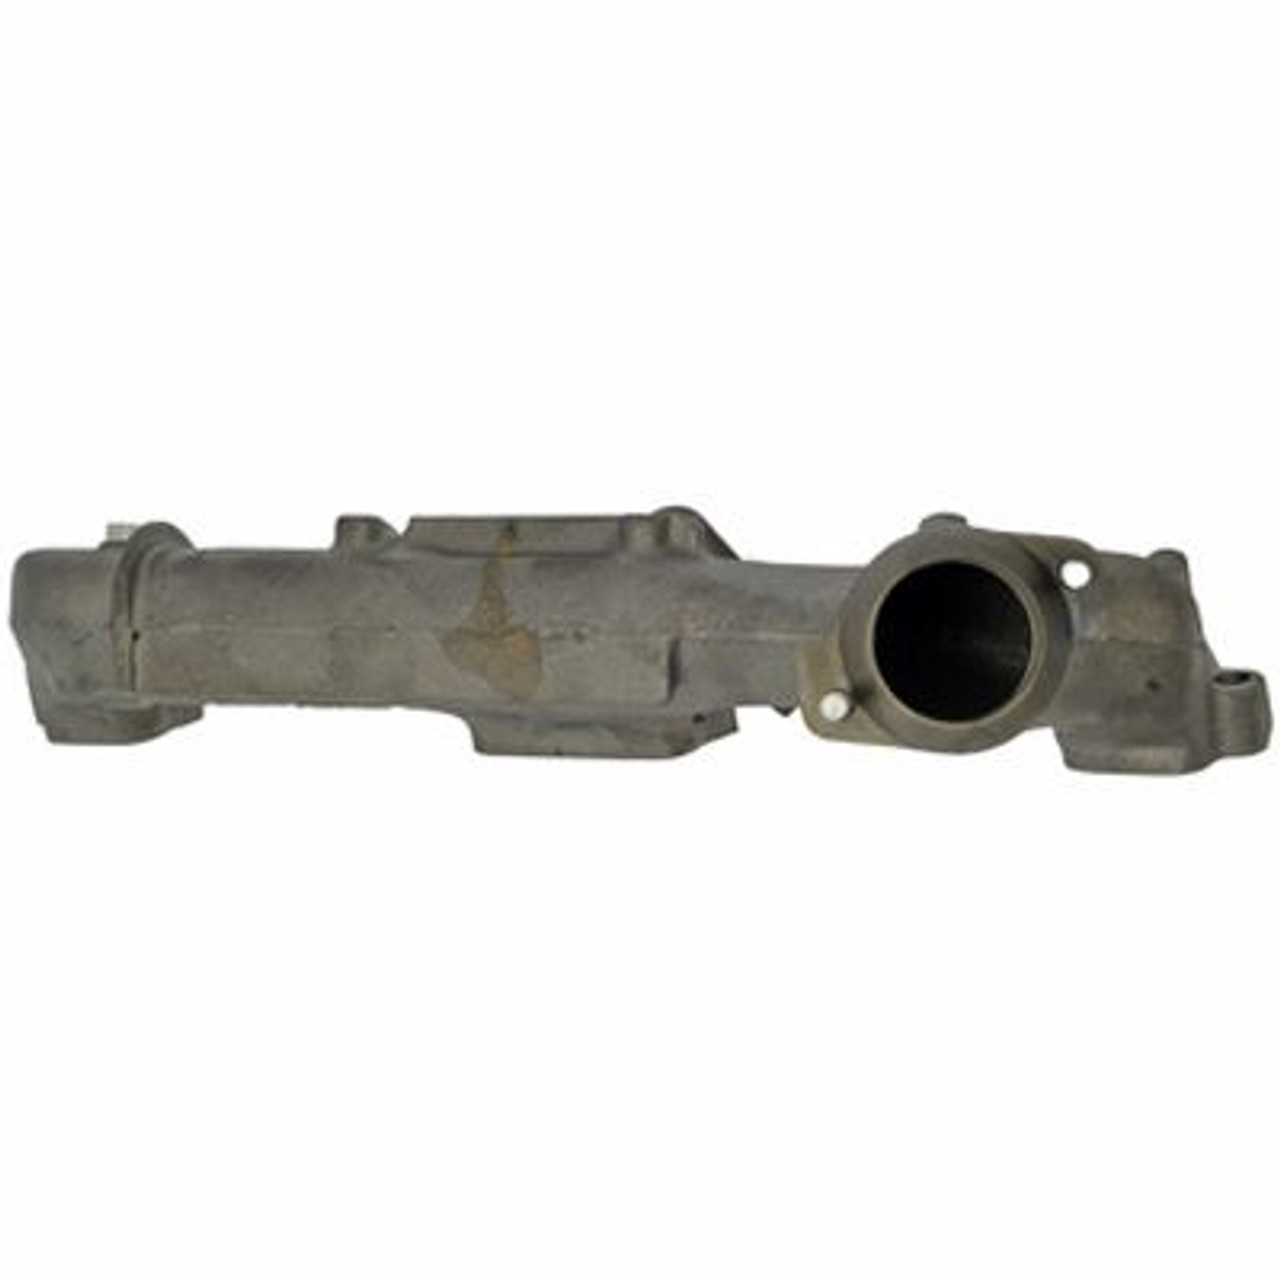 DRIVERS SIDE EXHAUST MANIFOLD 3